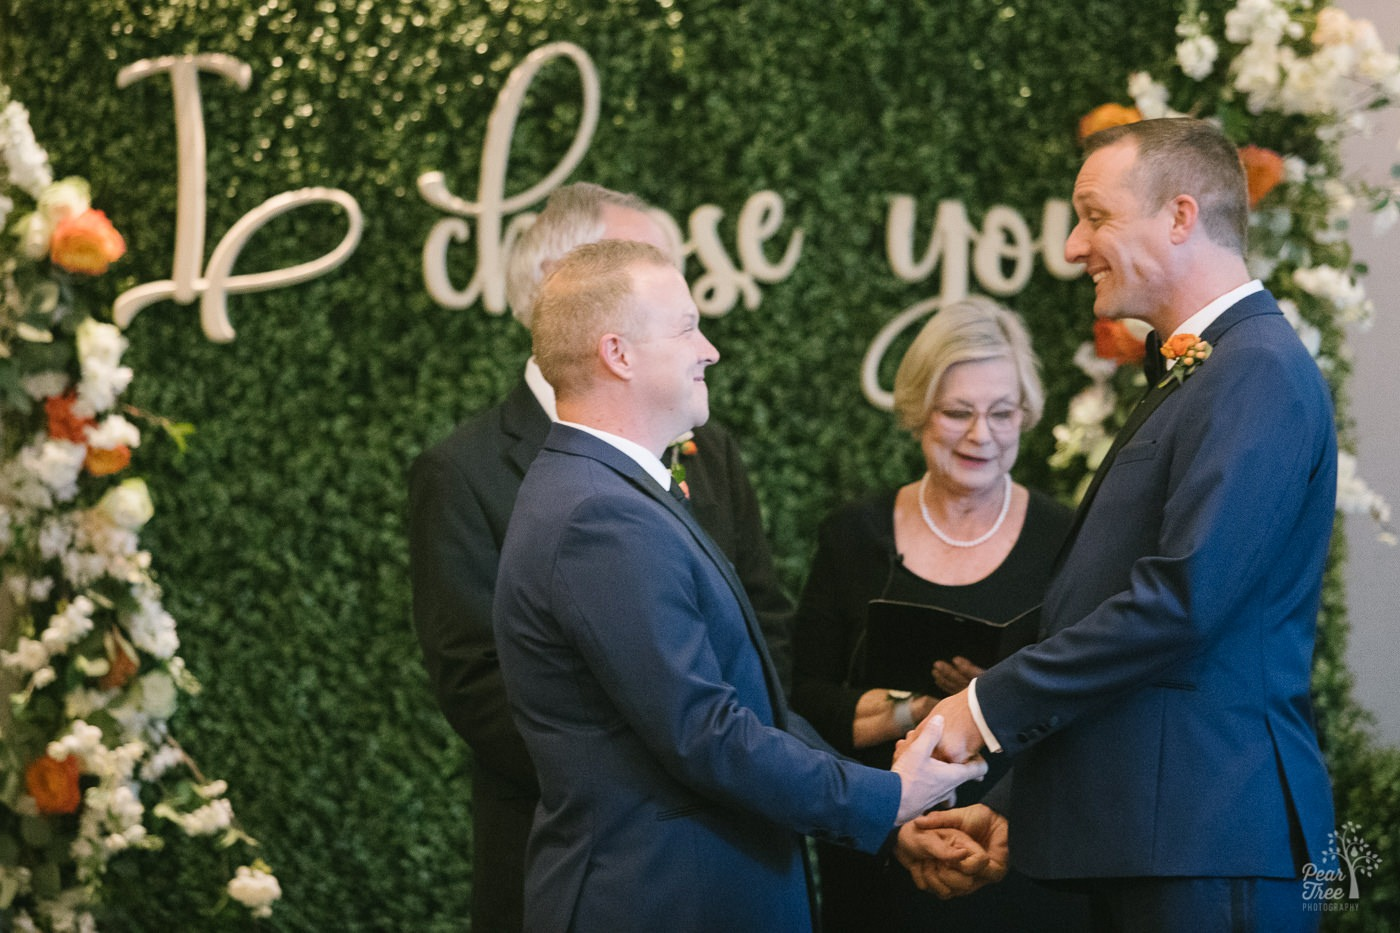 Grooms smiling in excitement as they're told they are officially married and can kiss each other.